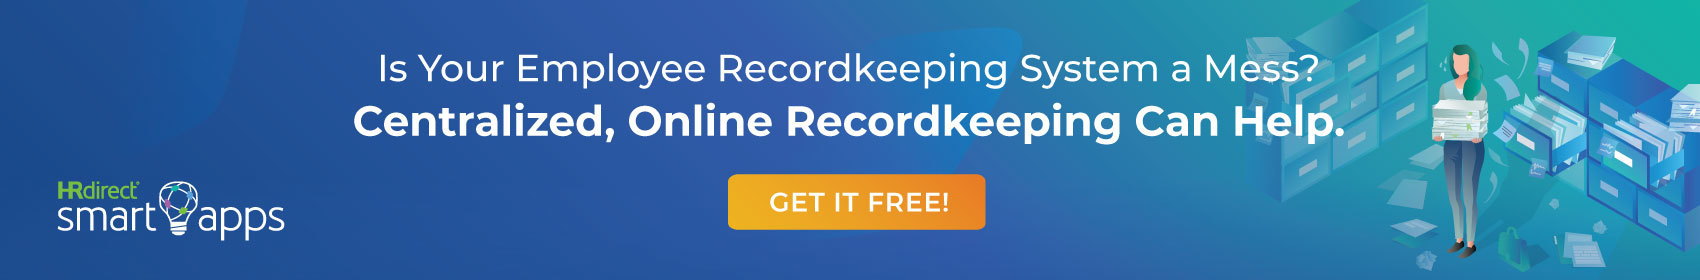 HRdirect Smart Apps - Employee Records